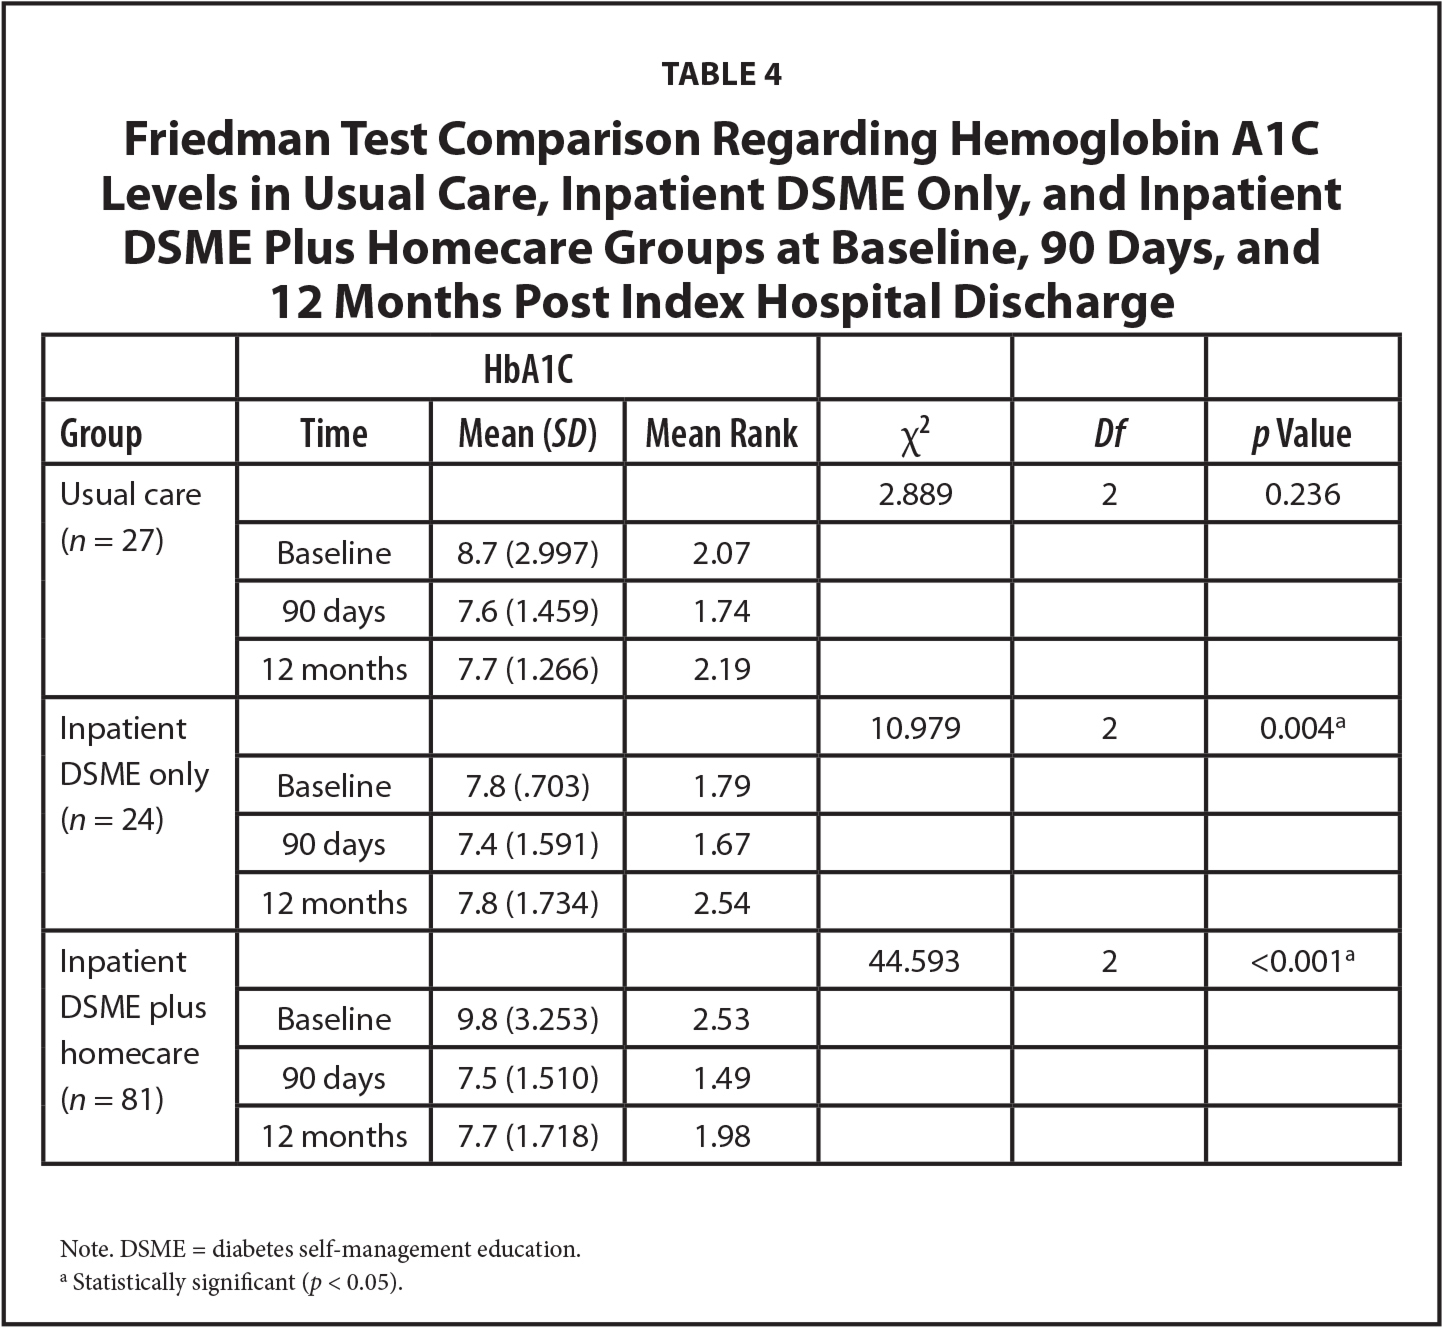 Friedman Test Comparison Regarding Hemoglobin A1C Levels in Usual Care, Inpatient DSME Only, and Inpatient DSME Plus Homecare Groups at Baseline, 90 Days, and 12 Months Post Index Hospital Discharge